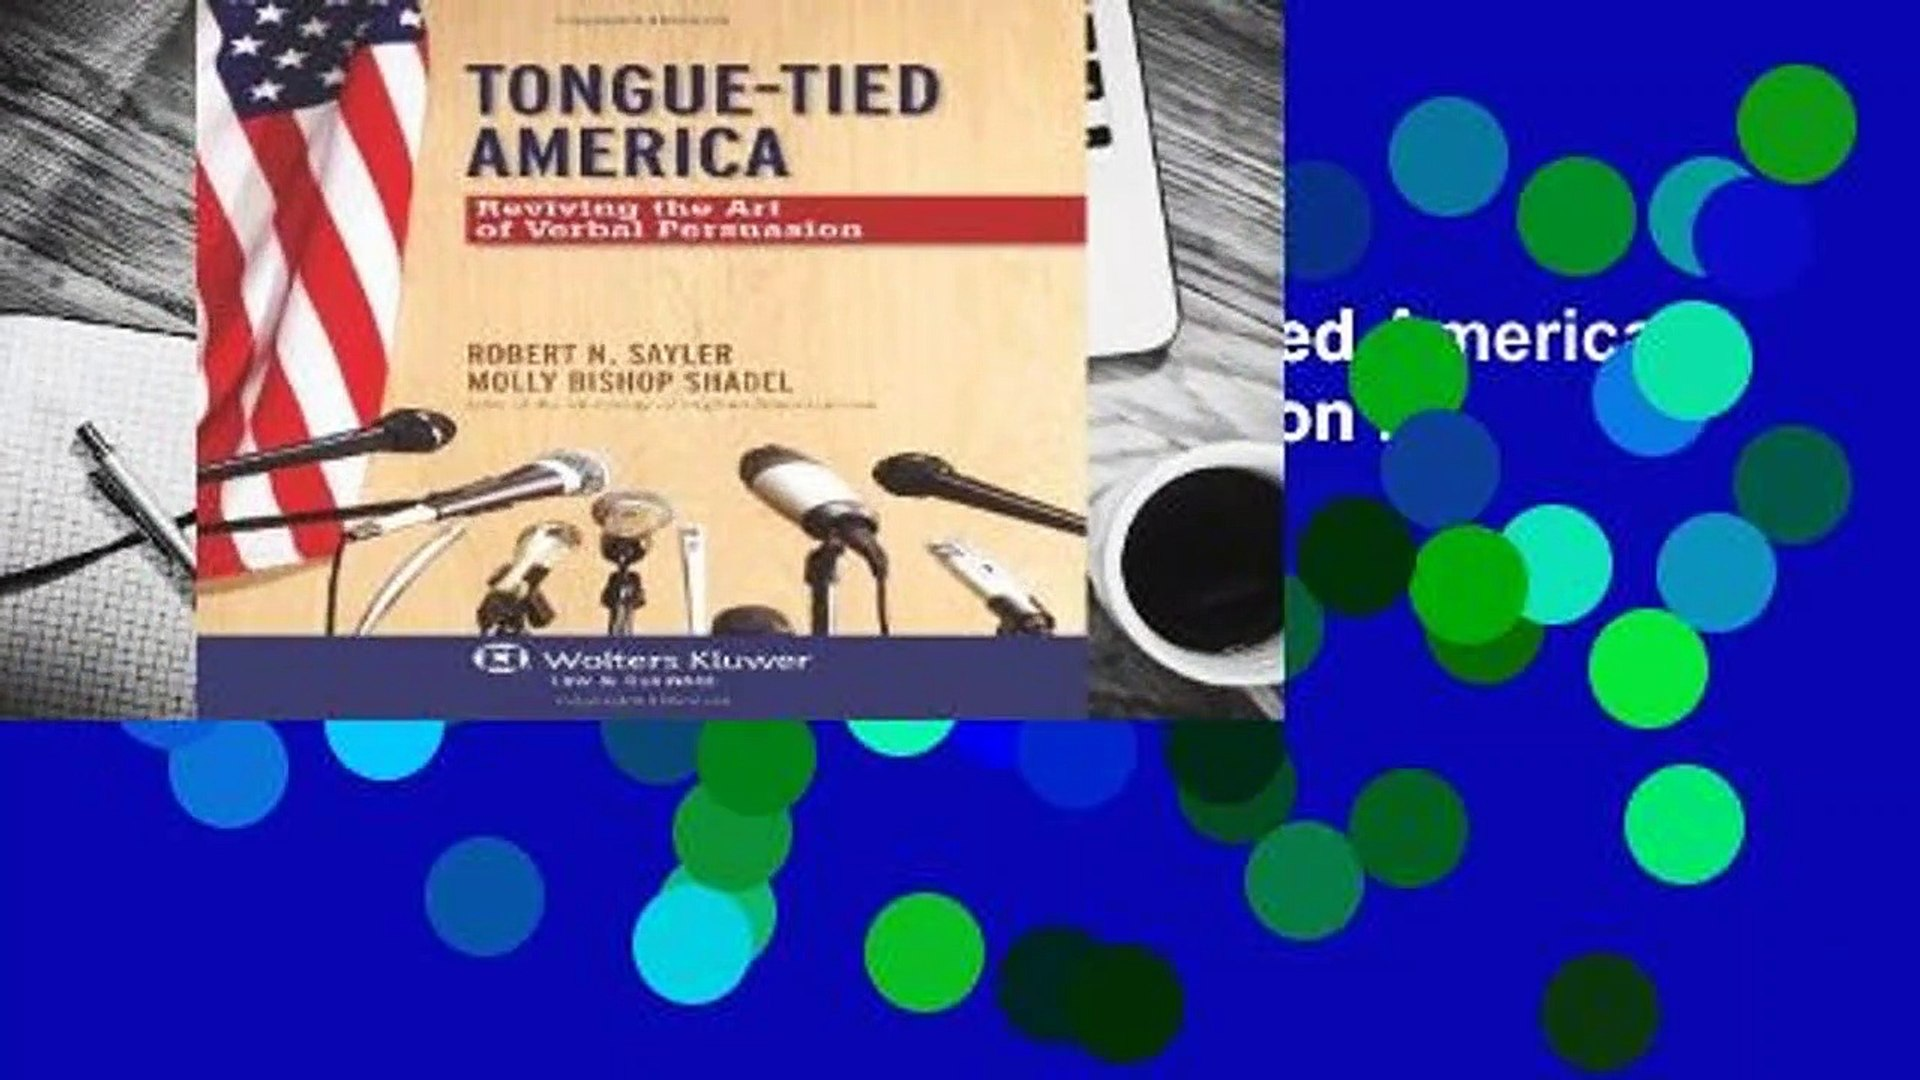 Any Format For Kindle  Tongue-Tied America: Reviving the Art of Verbal Persuasion by Sayler